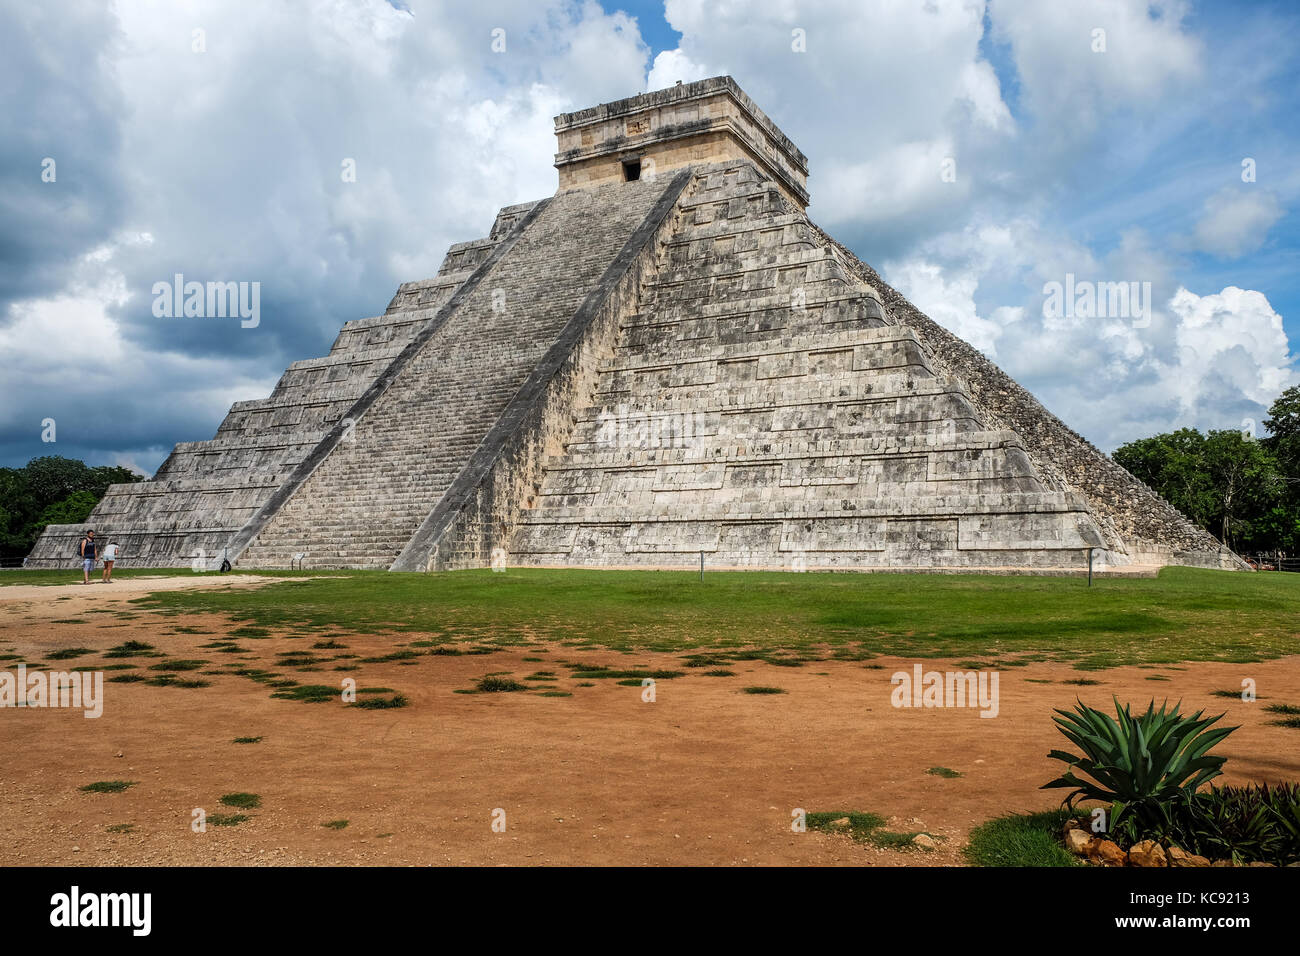 Chichen Itza archeological site Mexico - Stock Image